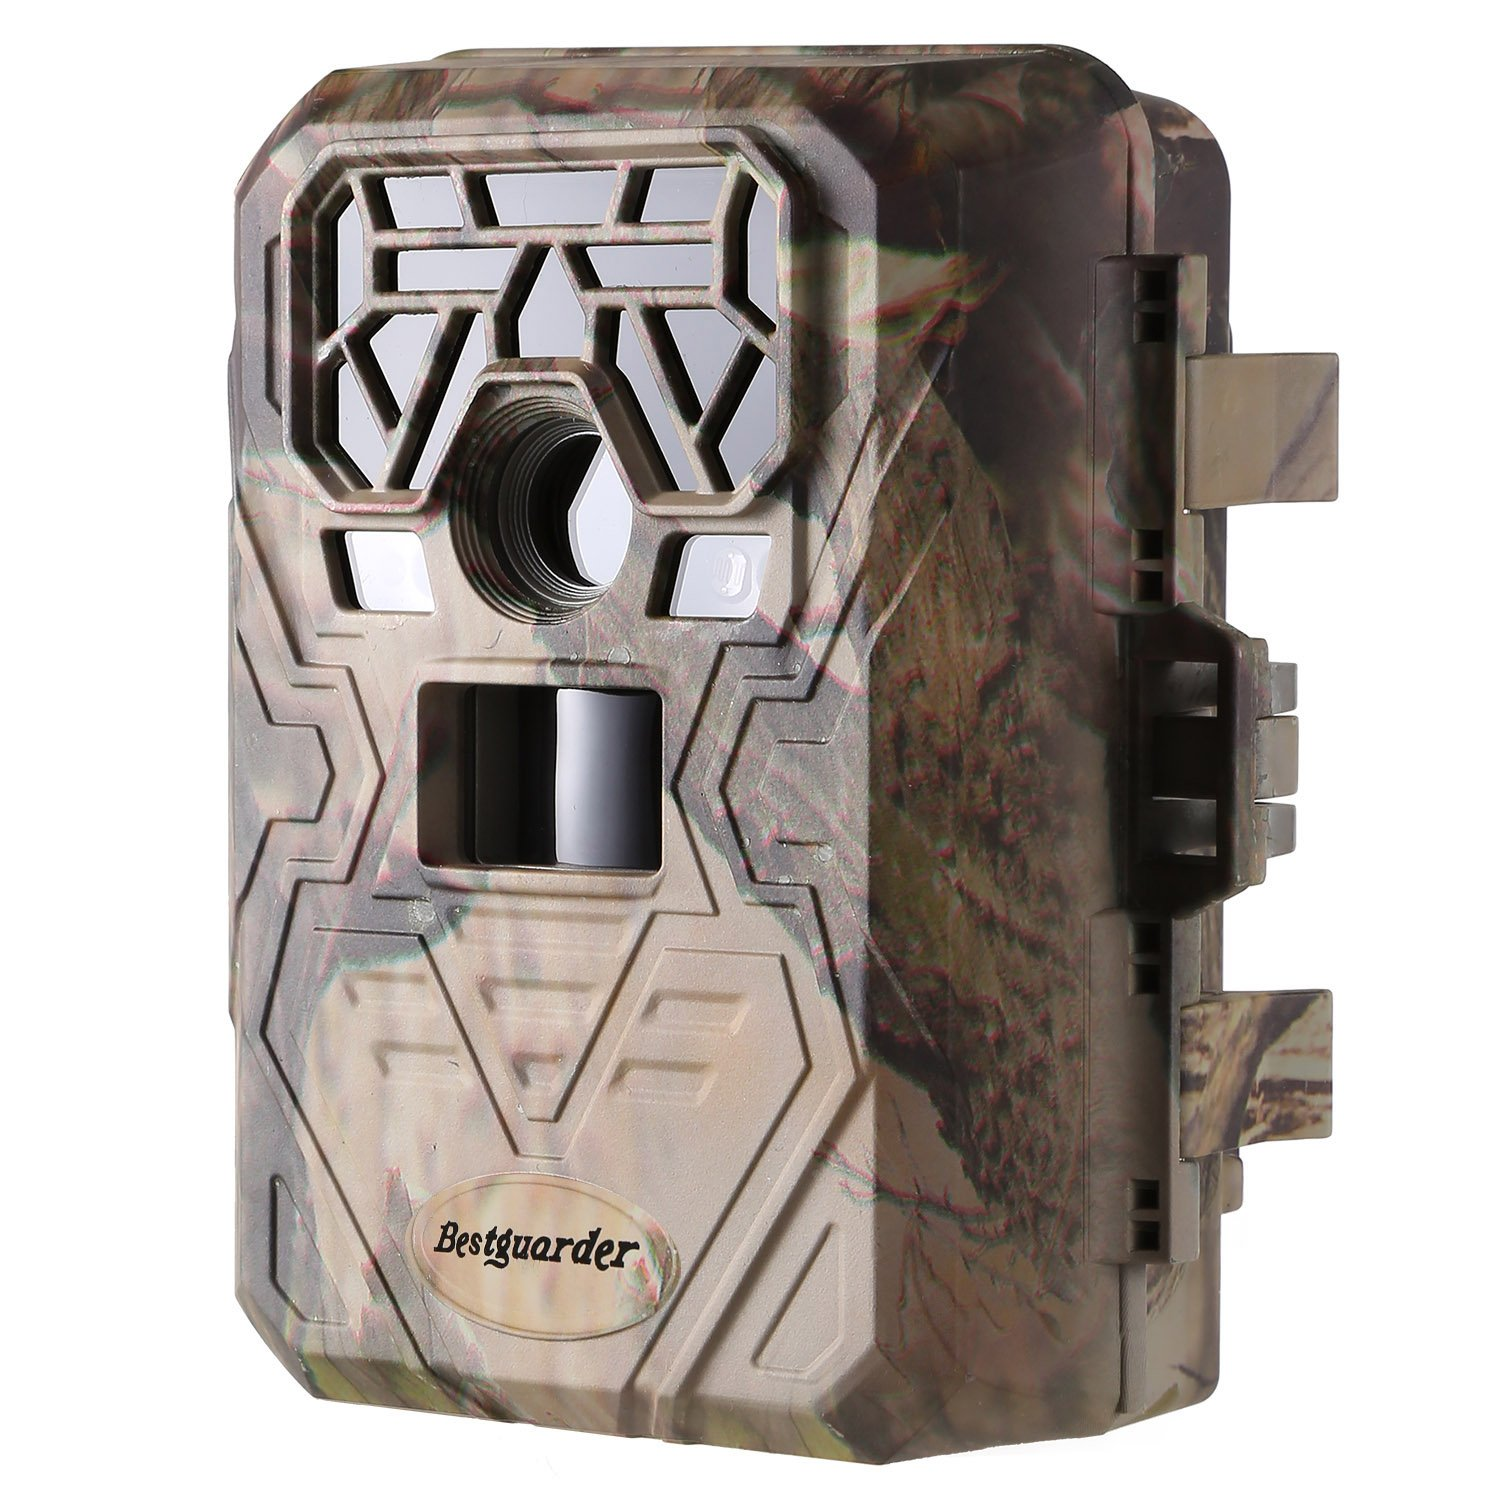 ANCHEER [2018 New] Trail Camera 12MP 1080P 75feet GPS Wildlife Hunting Motion Activated Game Camera Time Lapse with Metal Band Lock by ANCHEER (Image #1)